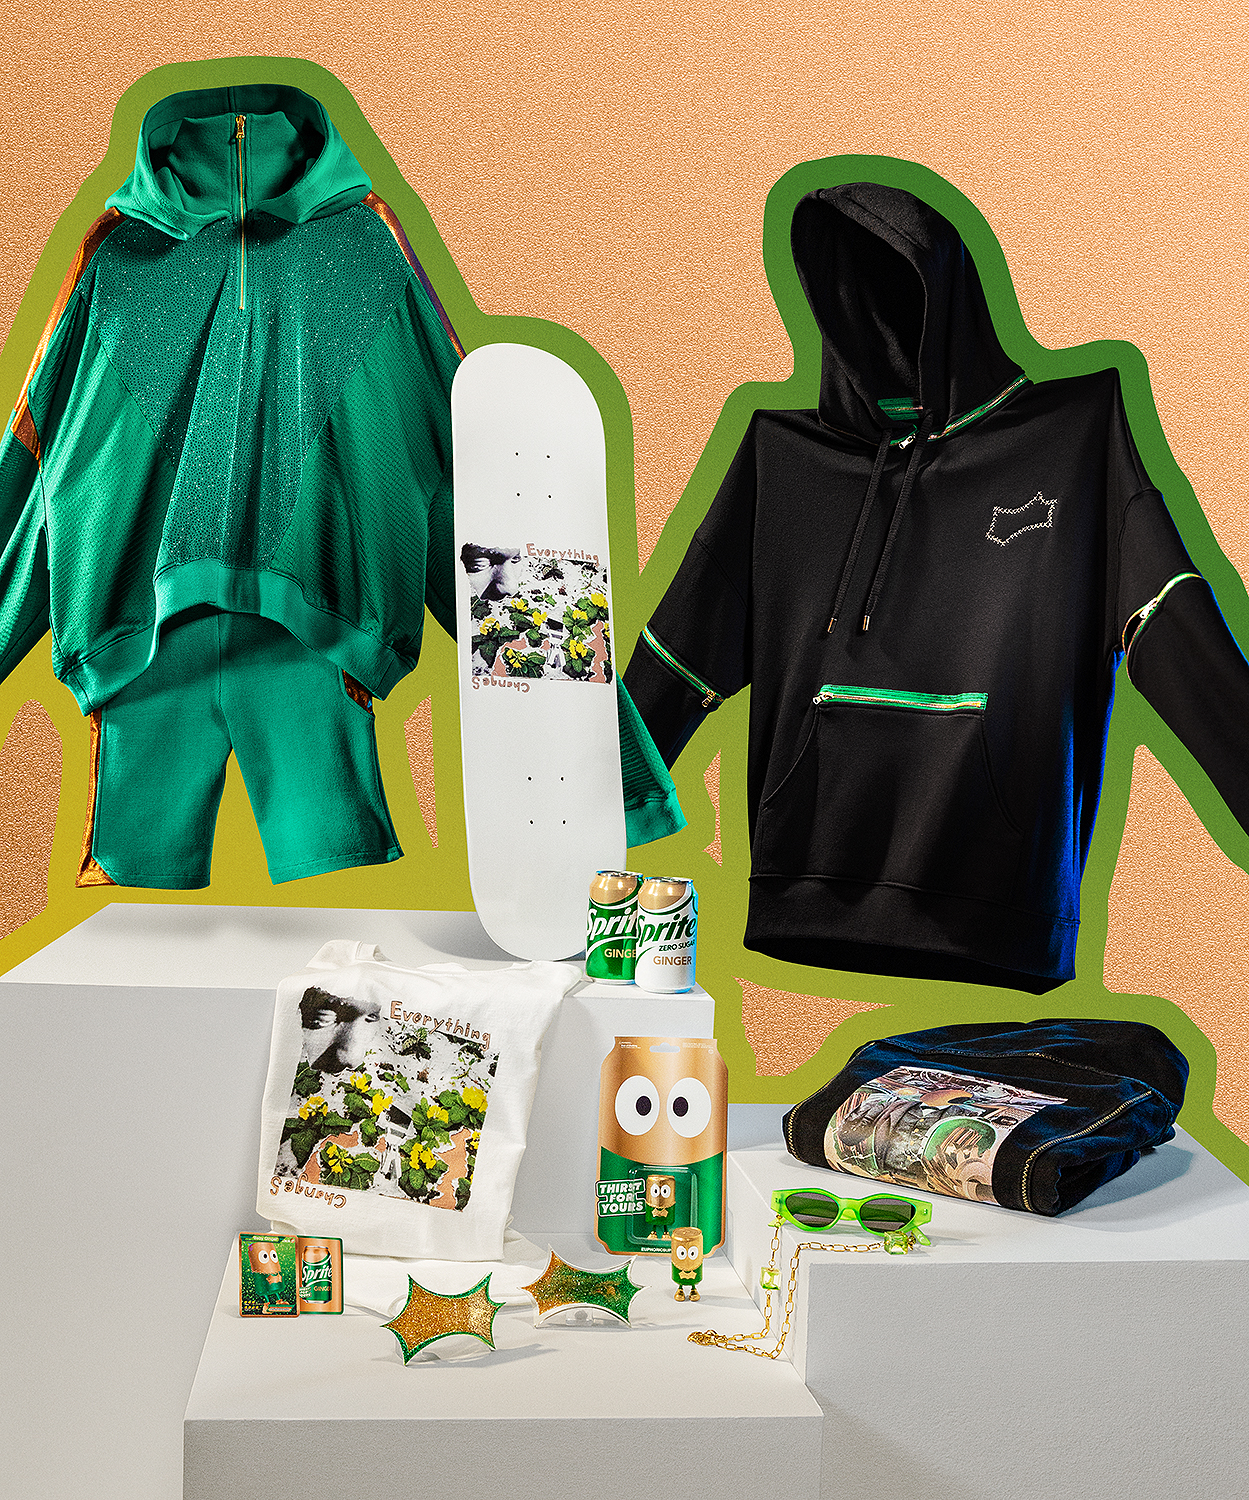 sprite ginger merch